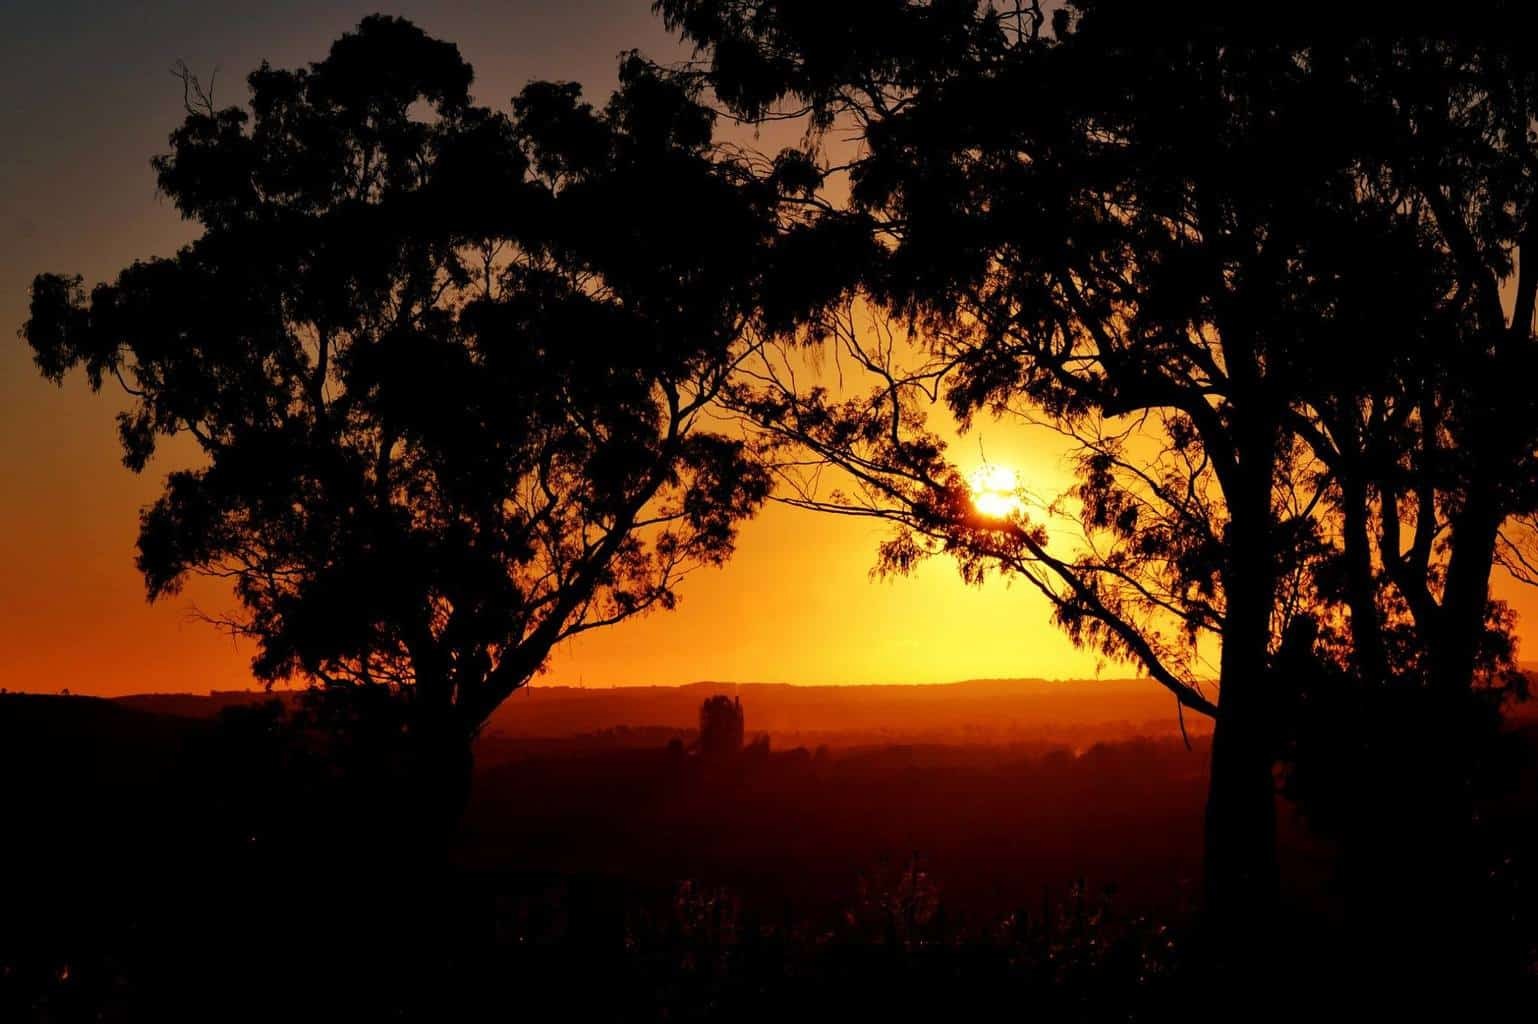 Sunset at 800m above sea level - Southern Highlands, Australia